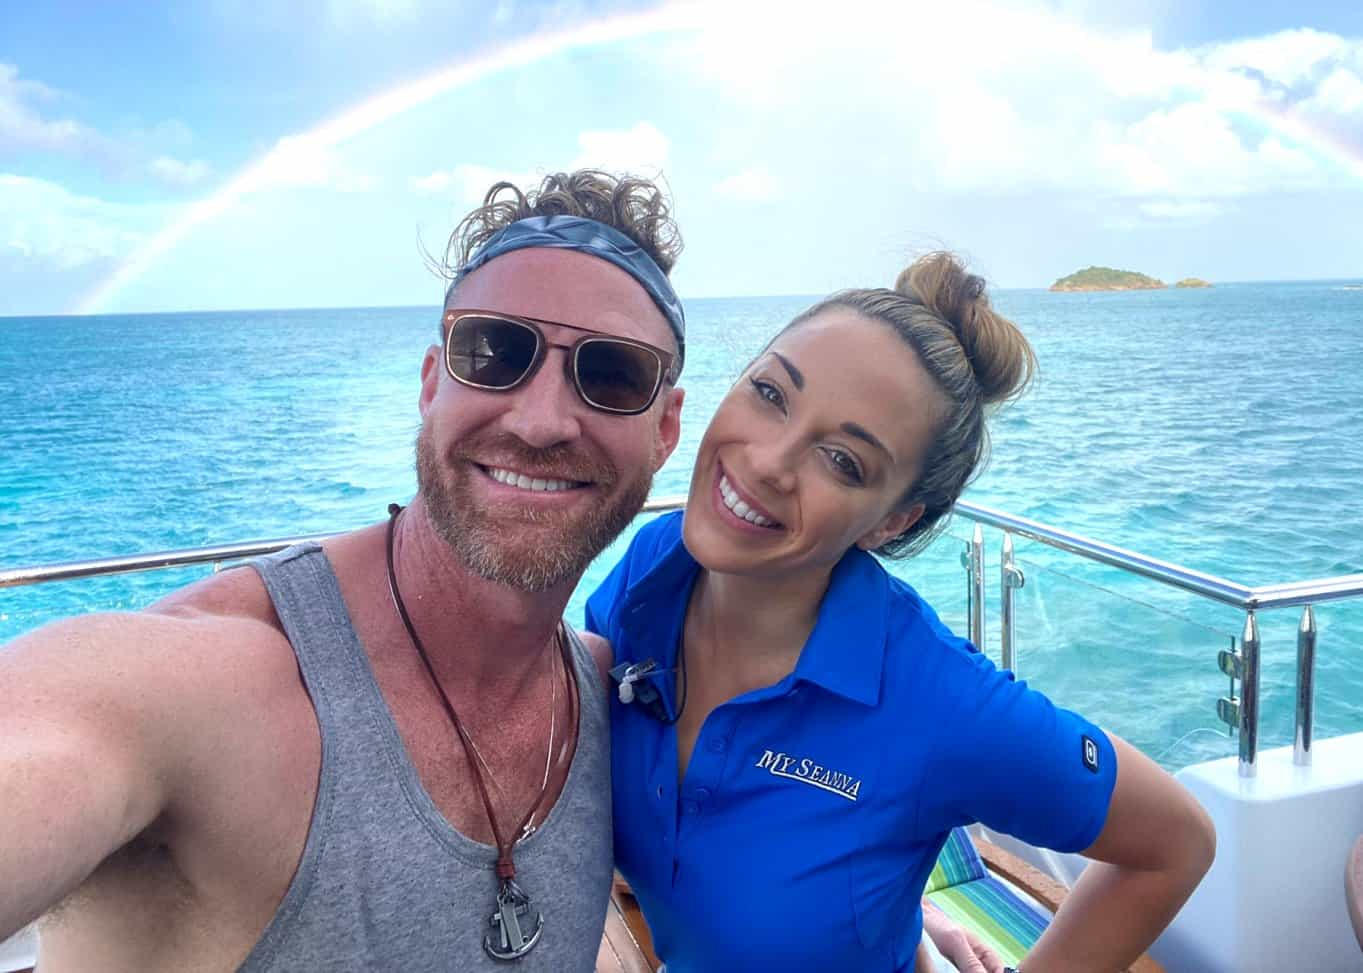 """Below Deck's Elizabeth Frankini Sticks Up For Controversial Guest Charley Walters, Admits Trip Was """"Crazy"""" and """"Overwhelming"""" as Charley Issues Apology, Plus Live Viewing Thread!"""